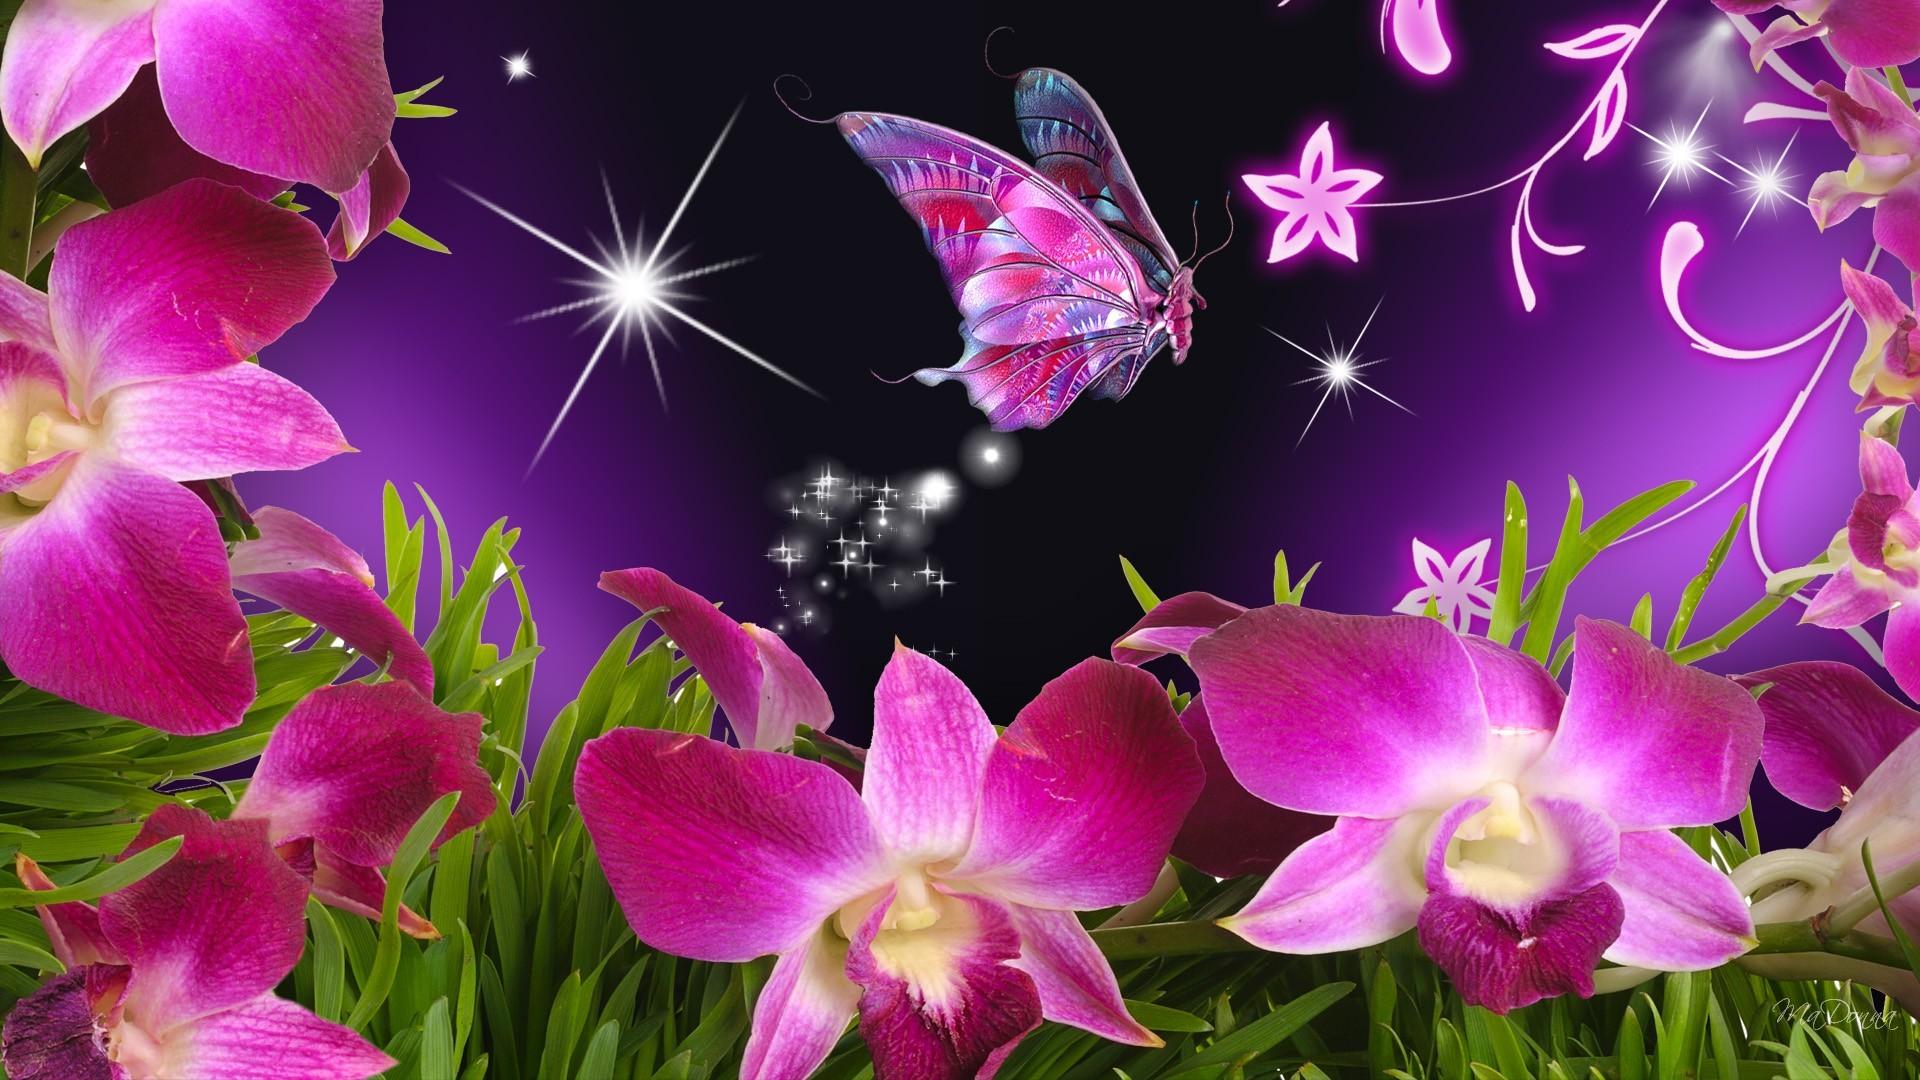 Beautiful butterflies and flowers wallpapers 56 images 1920x1080 flowers for beautiful flowers and butterflies wallpapers wallpapersthemesect izmirmasajfo